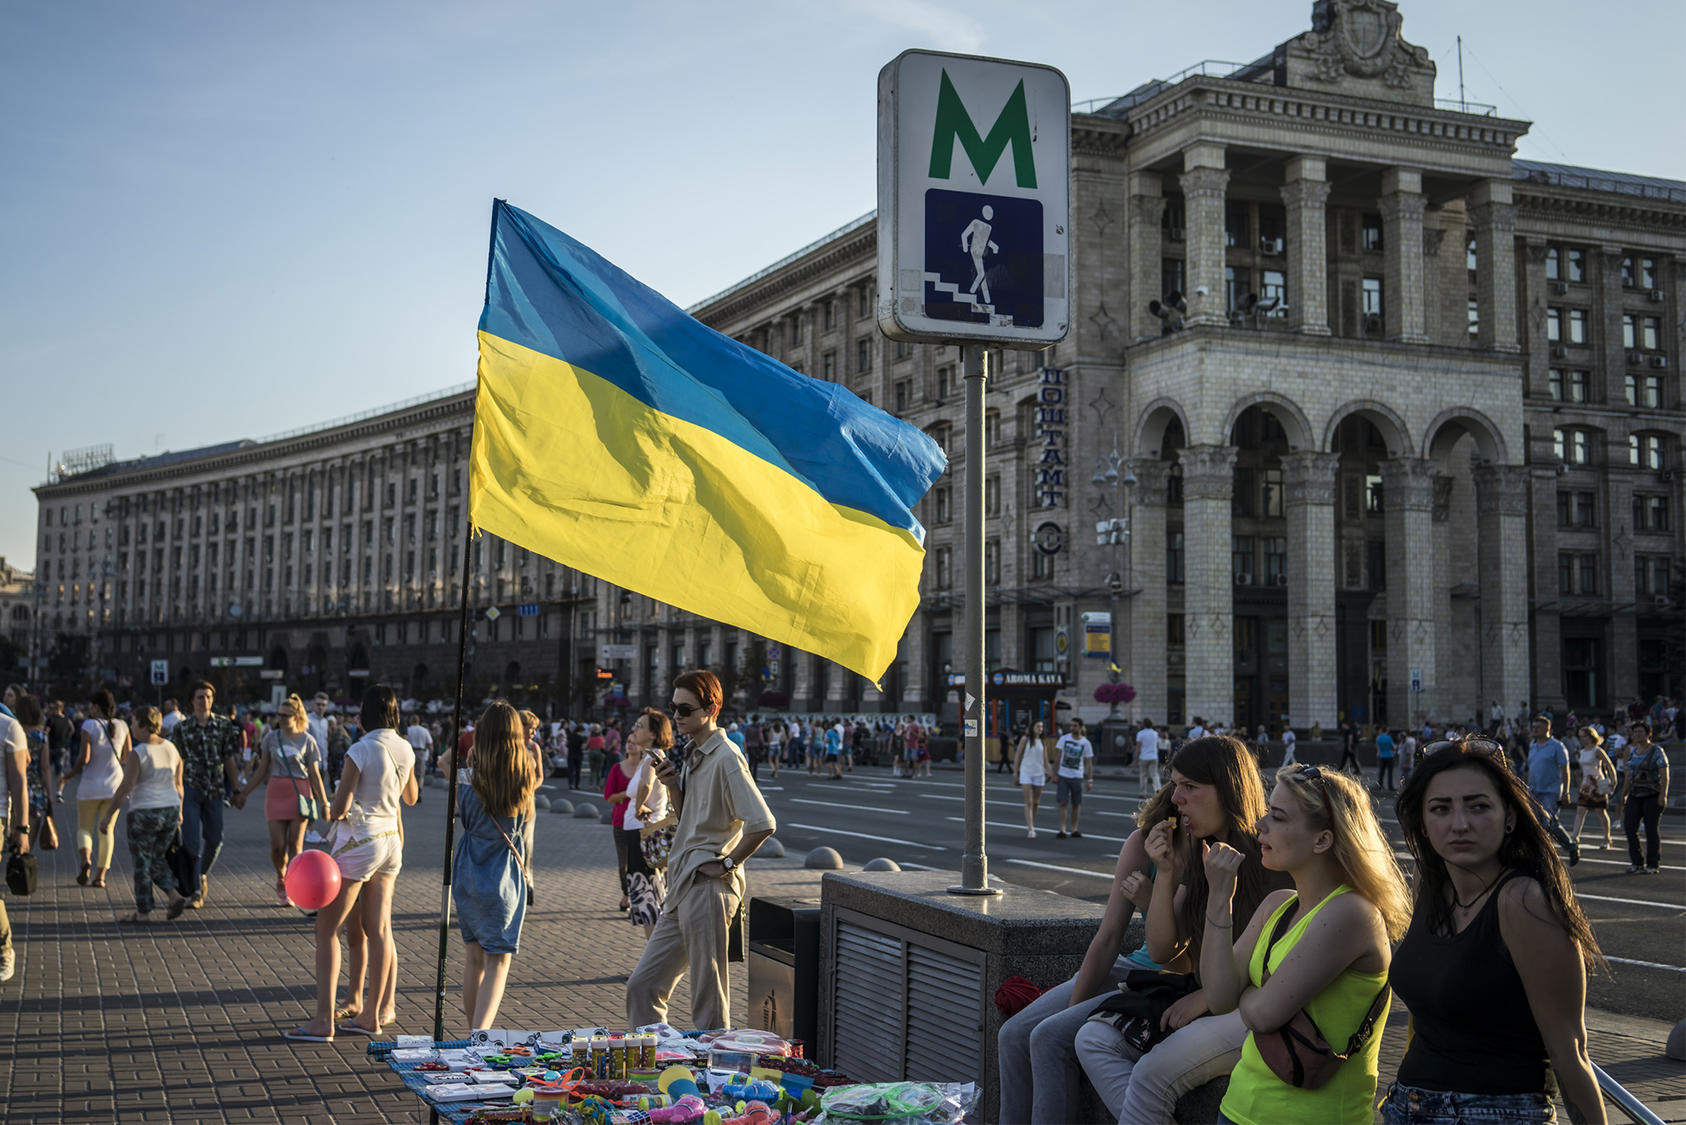 A Ukrainian flag flies in downtown Kiev, June 28, 2017. (Brendan Hoffman/The New York Times)